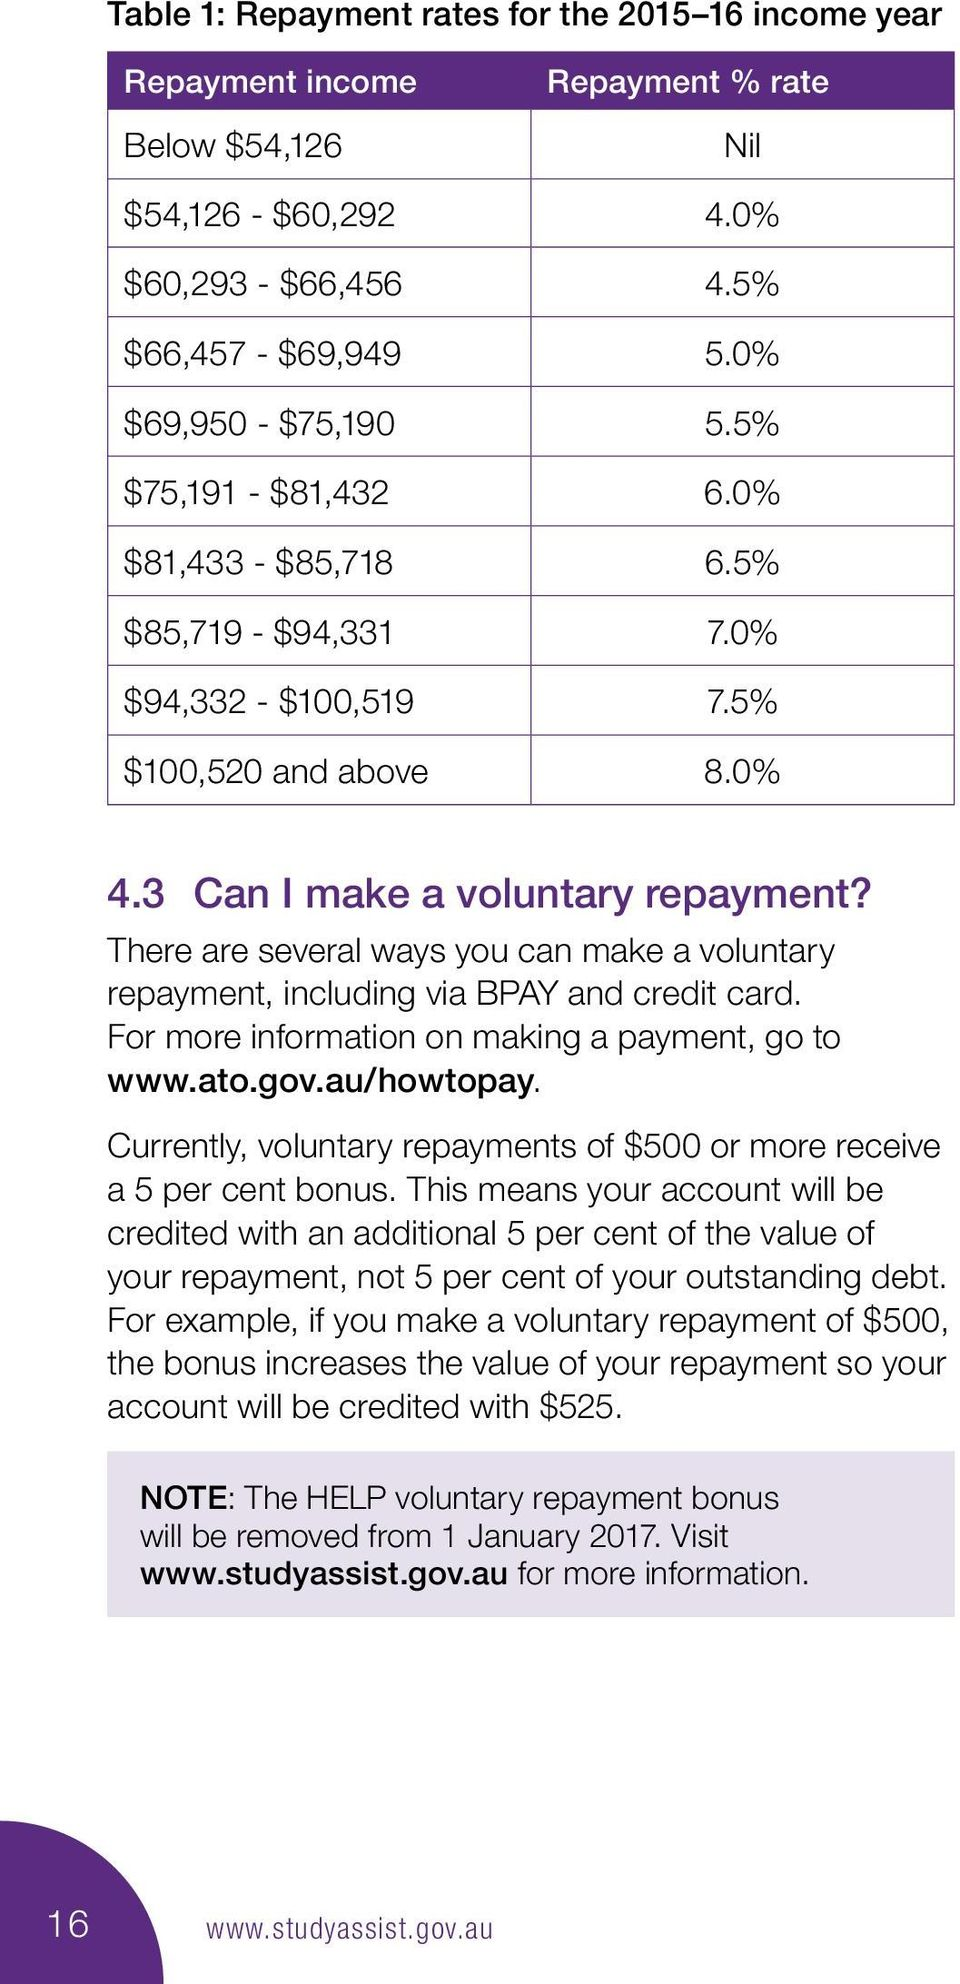 There are several ways you can make a voluntary repayment, including via BPAY and credit card. For more information on making a payment, go to www.ato.gov.au/howtopay.